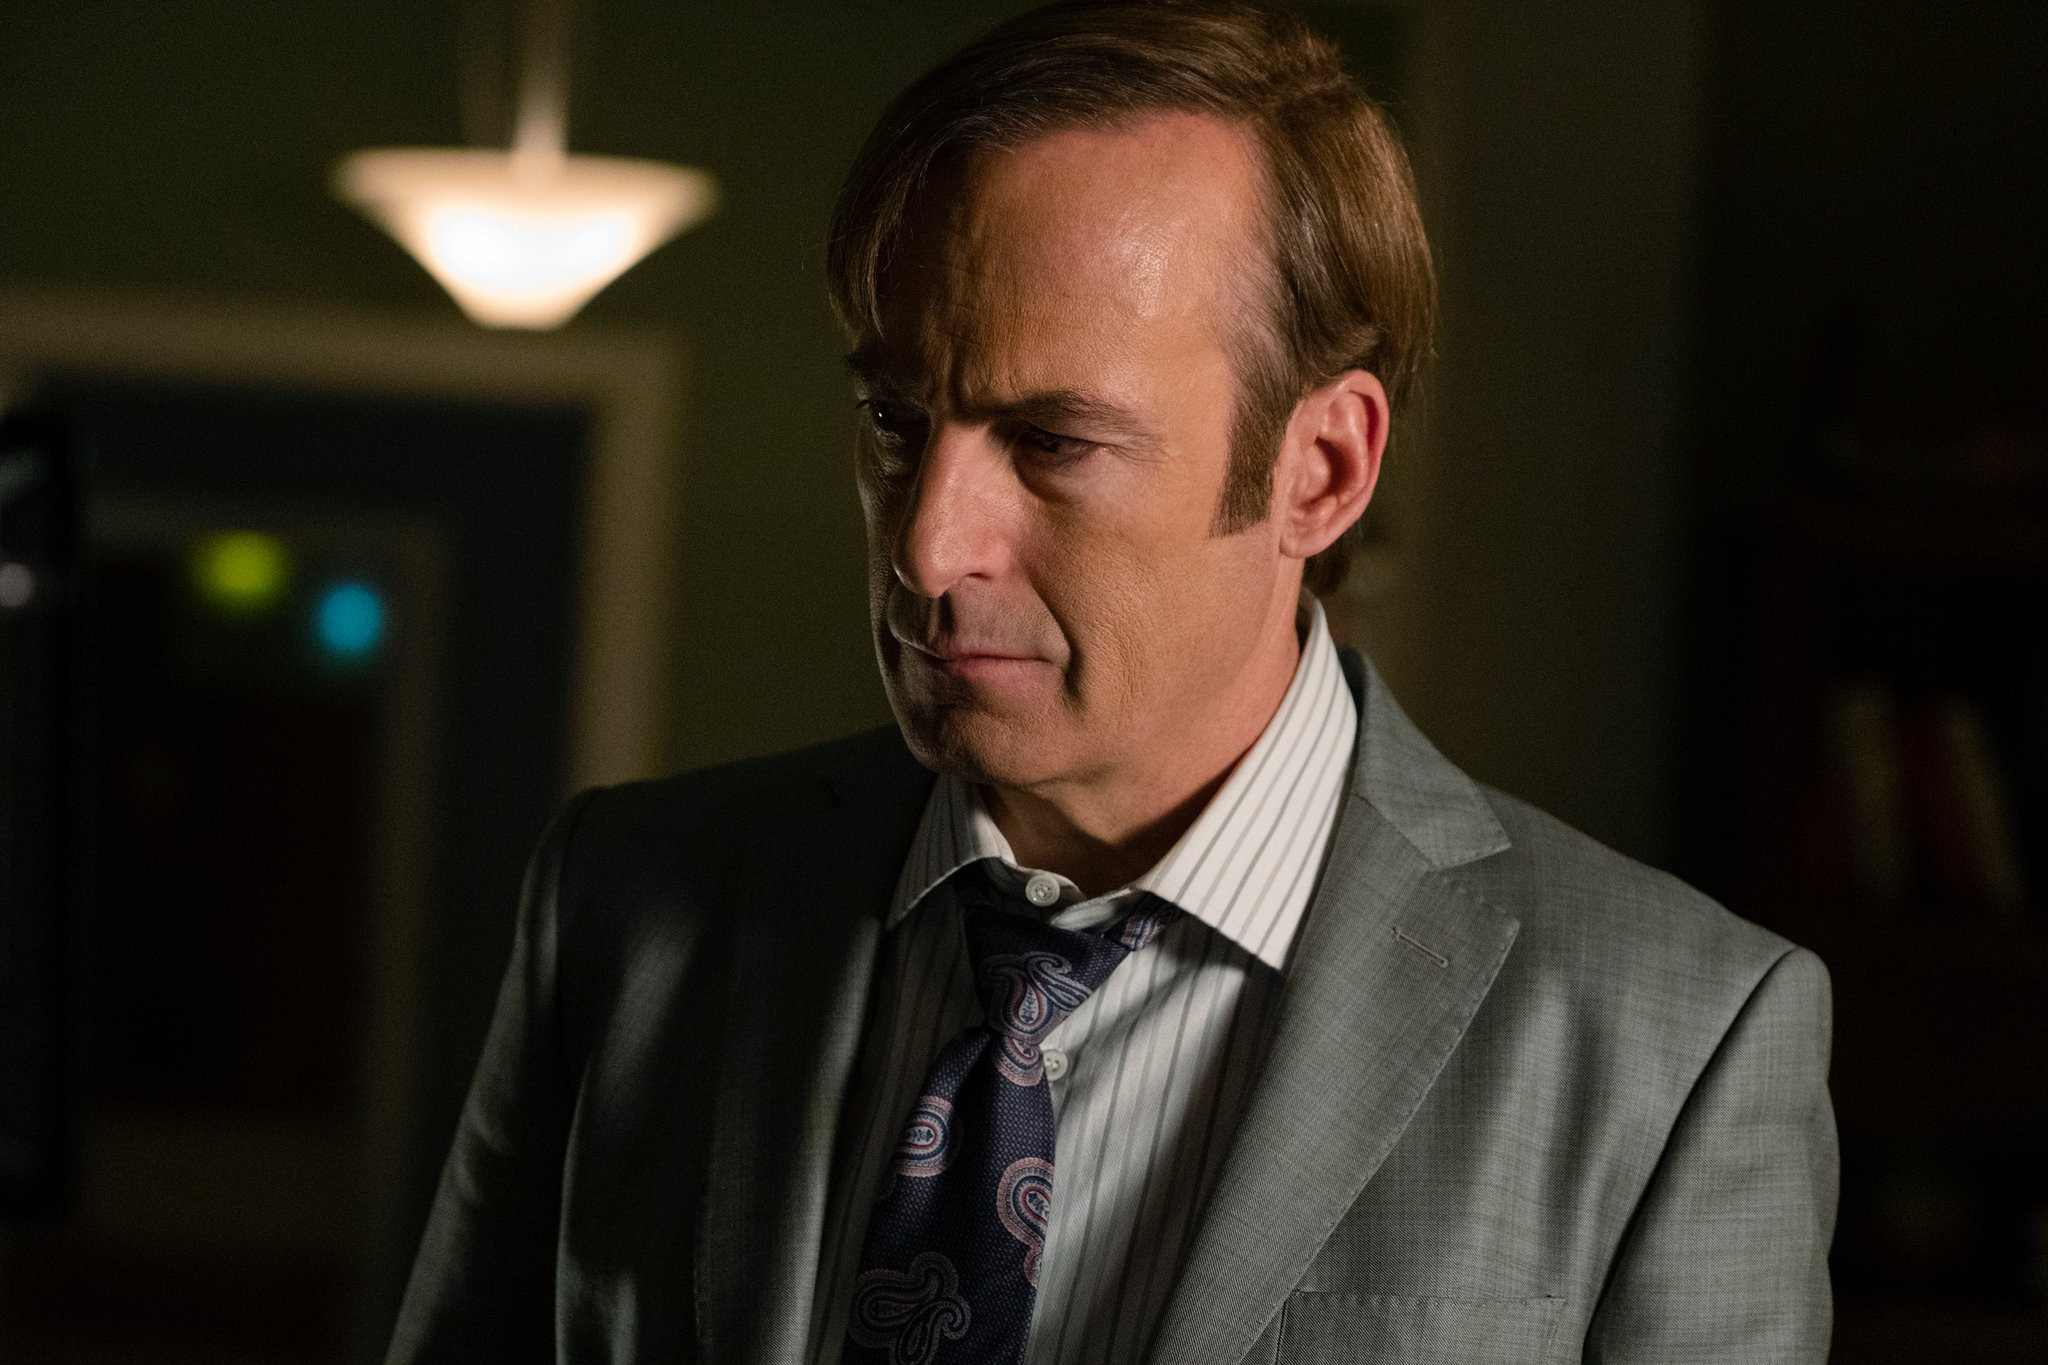 A still from the famous Netflix show Better Call Saul.